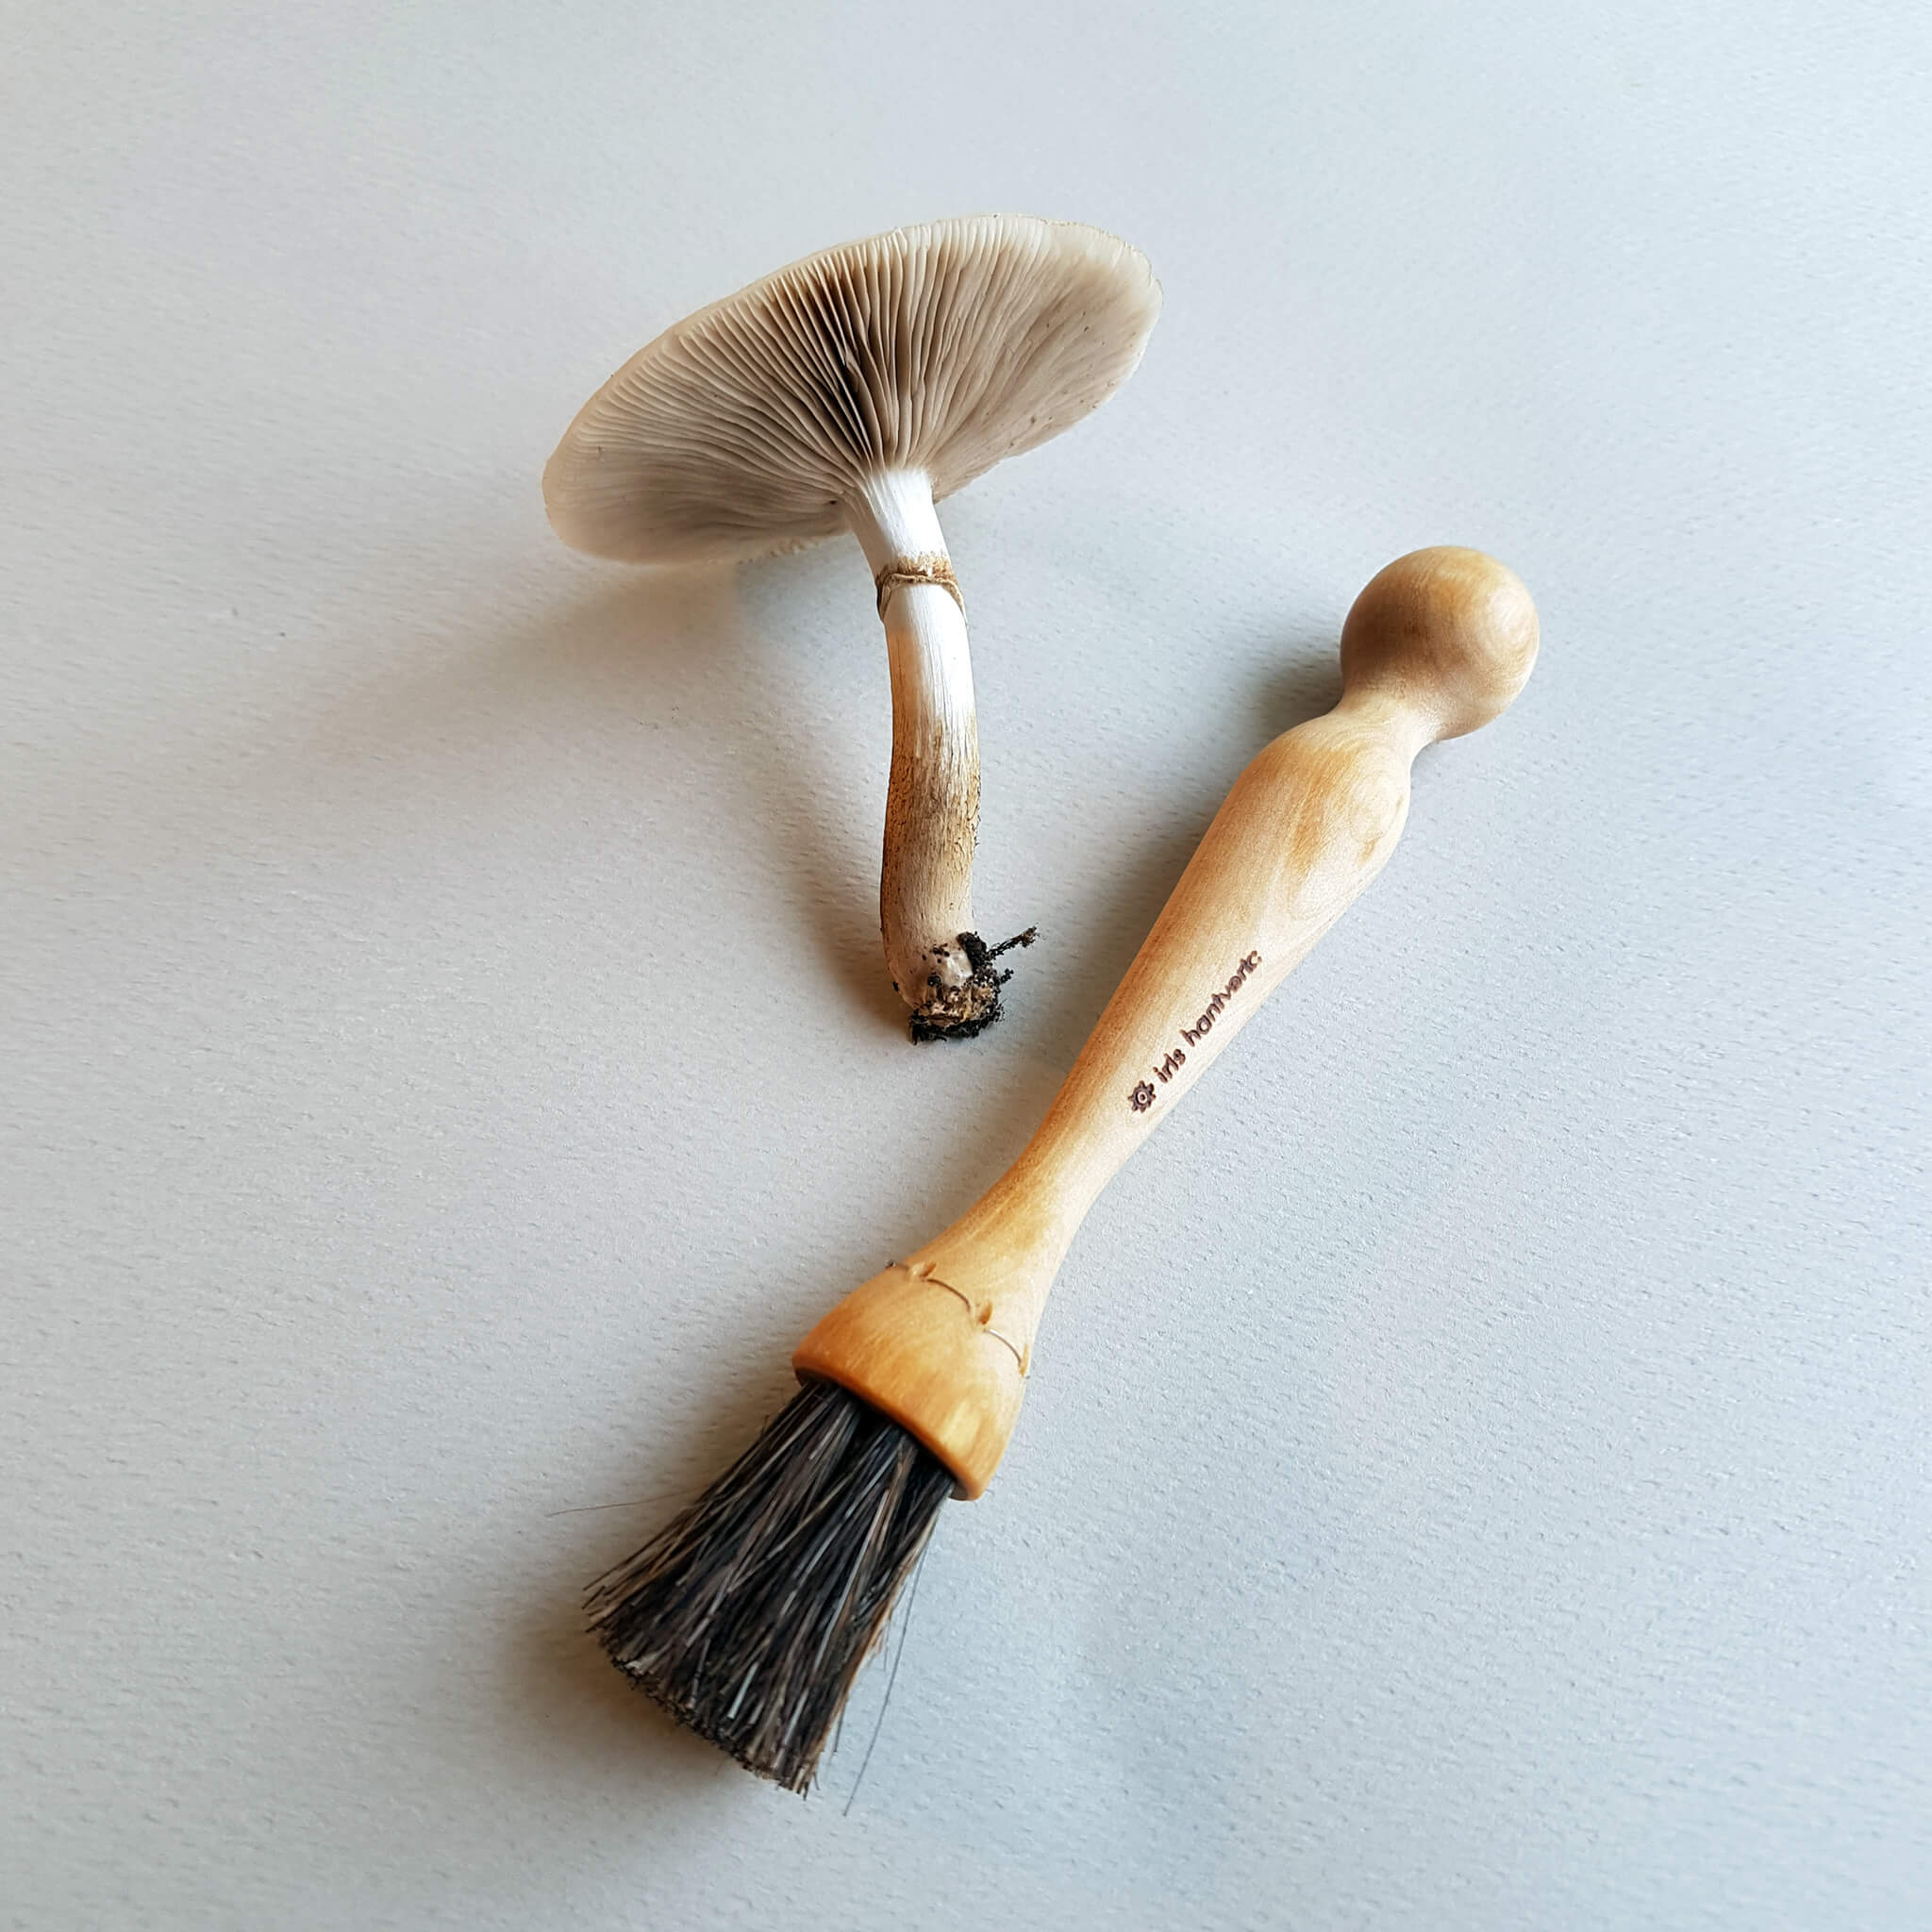 Mushroom Brush Handmade - Unik by Nature